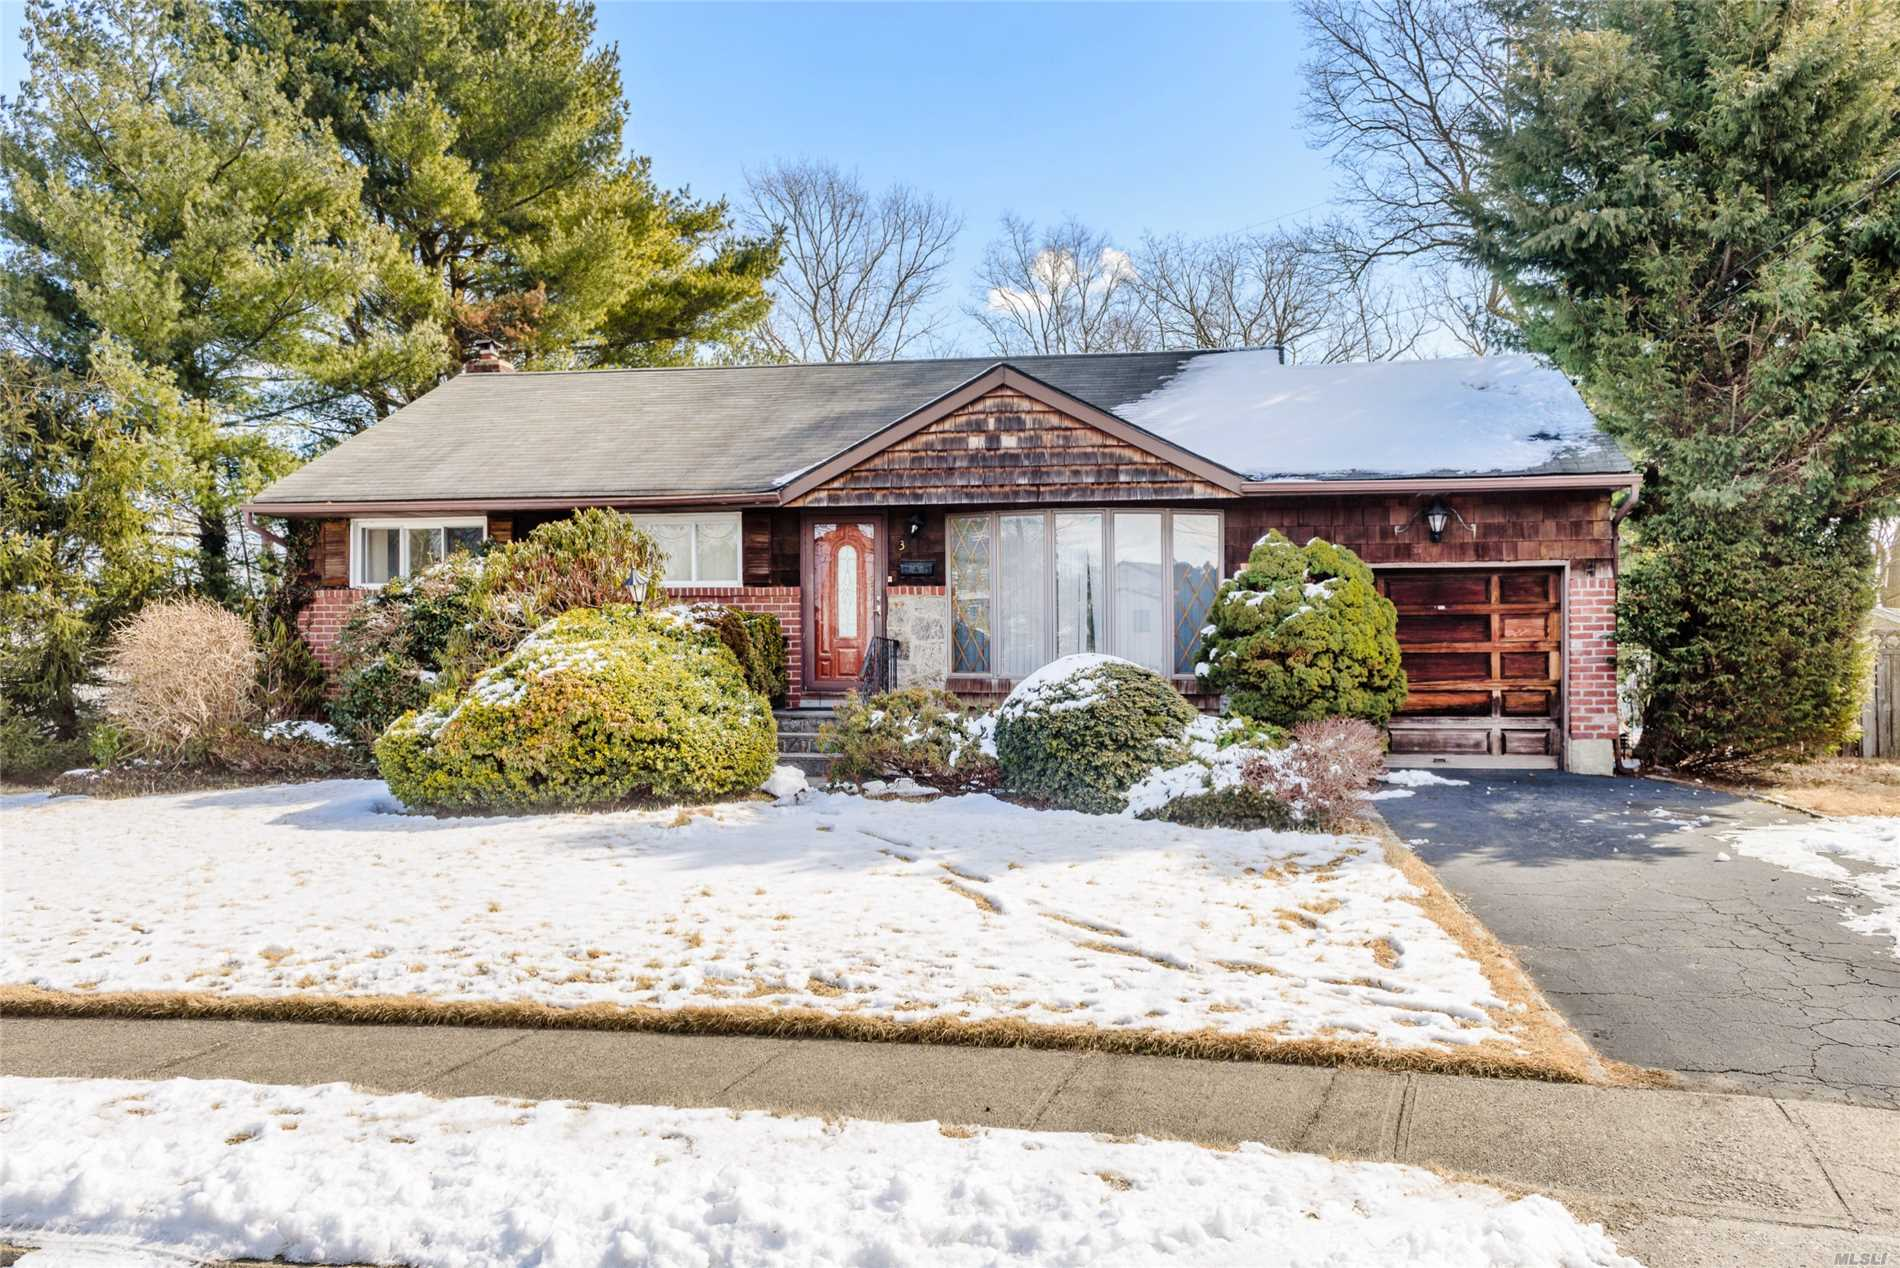 Calling All Builders And Investors!! Amazing Opportunity In Desirable Old Bethpage. Sold As Is This Ranch Home Is Close To Parkways, Shopping, Bike Paths And State Parks.